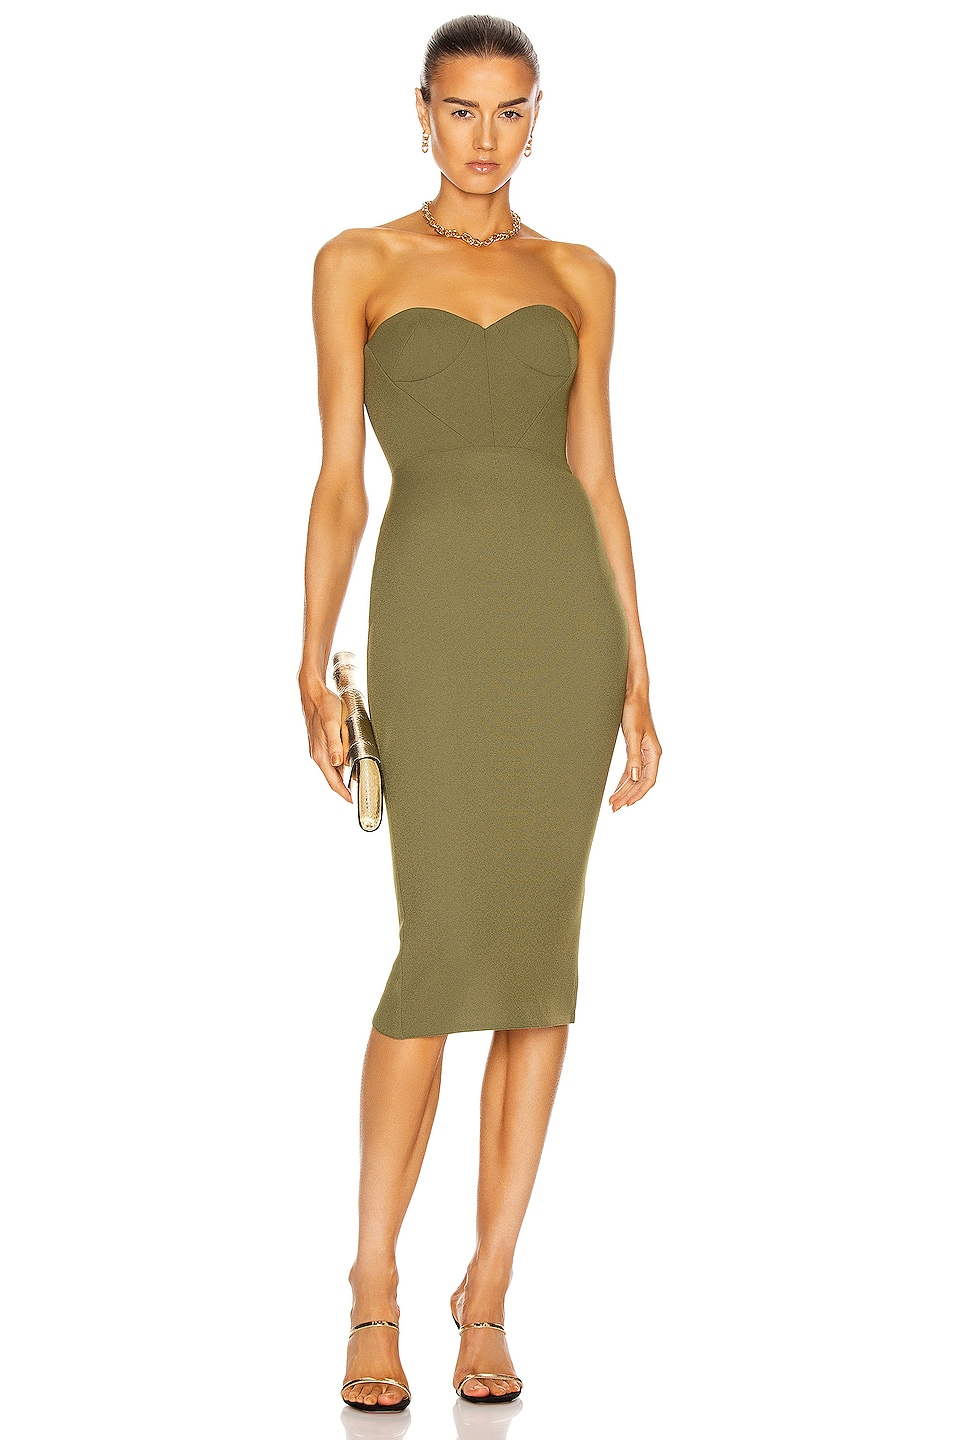 Image 1 of Alex Perry Kye Dress in Khaki